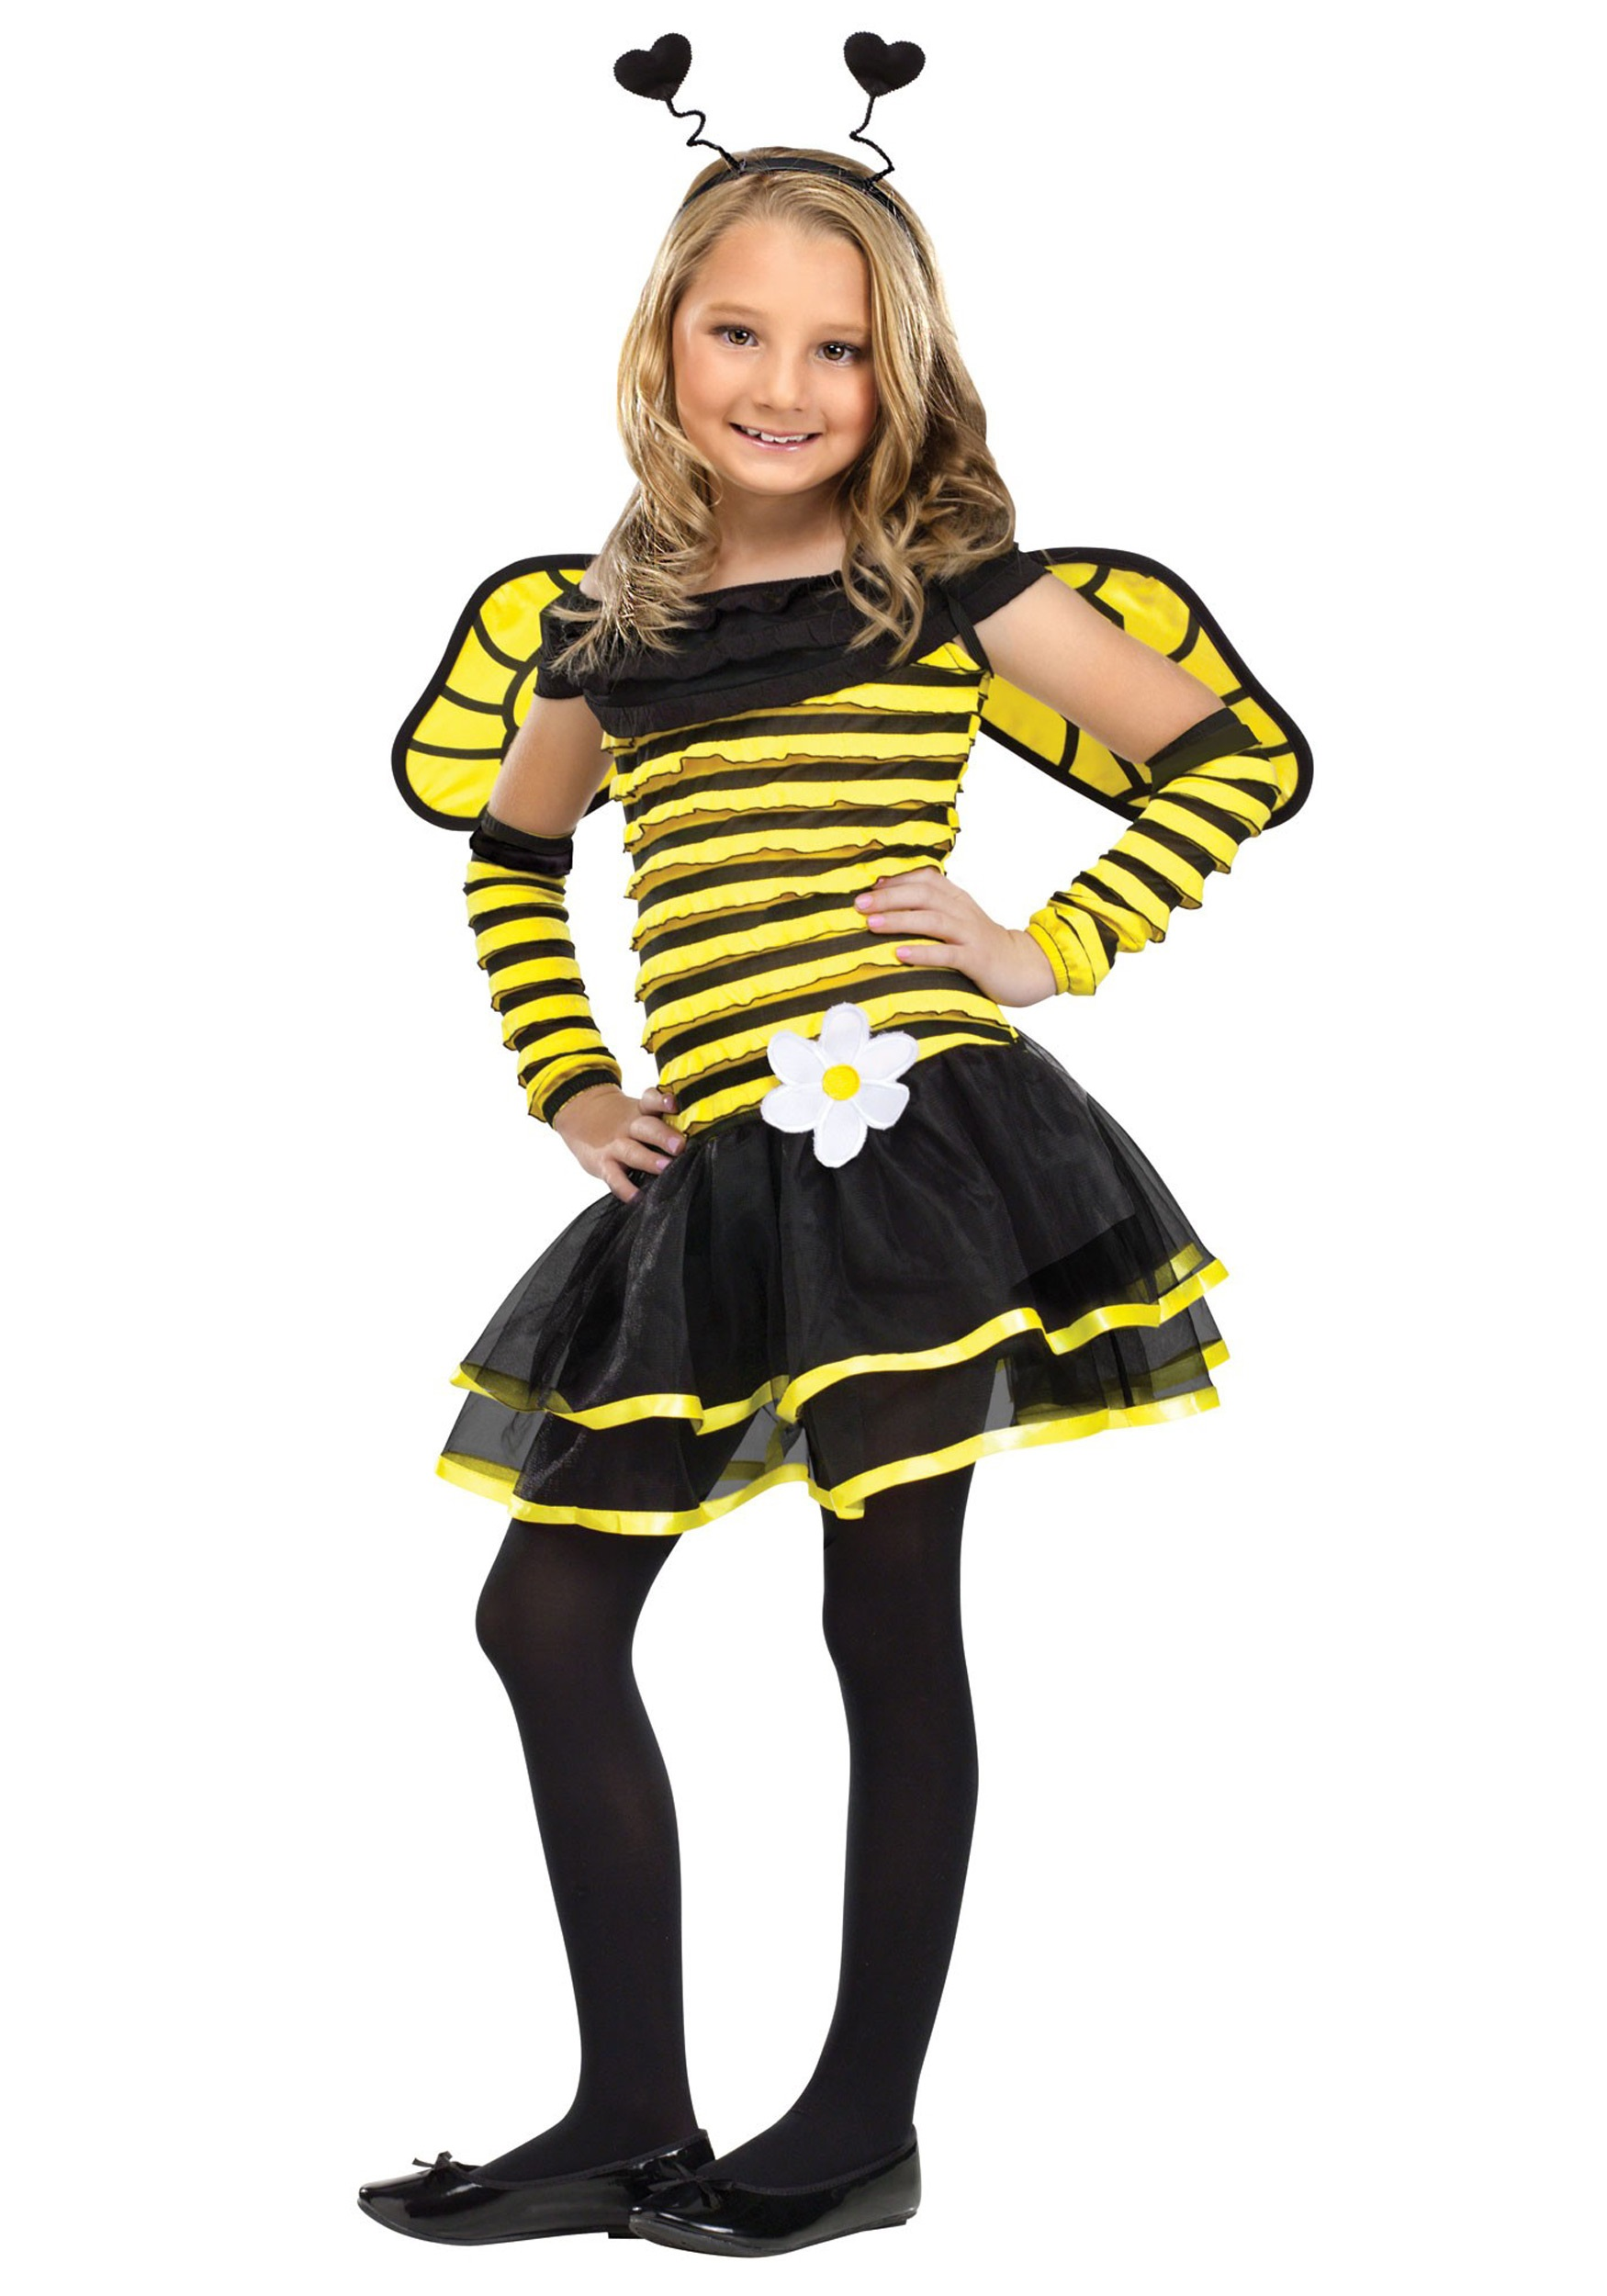 Girls Busy Bee Costume  sc 1 st  Halloween Costumes & Girls Busy Bee Costume - Halloween Costumes